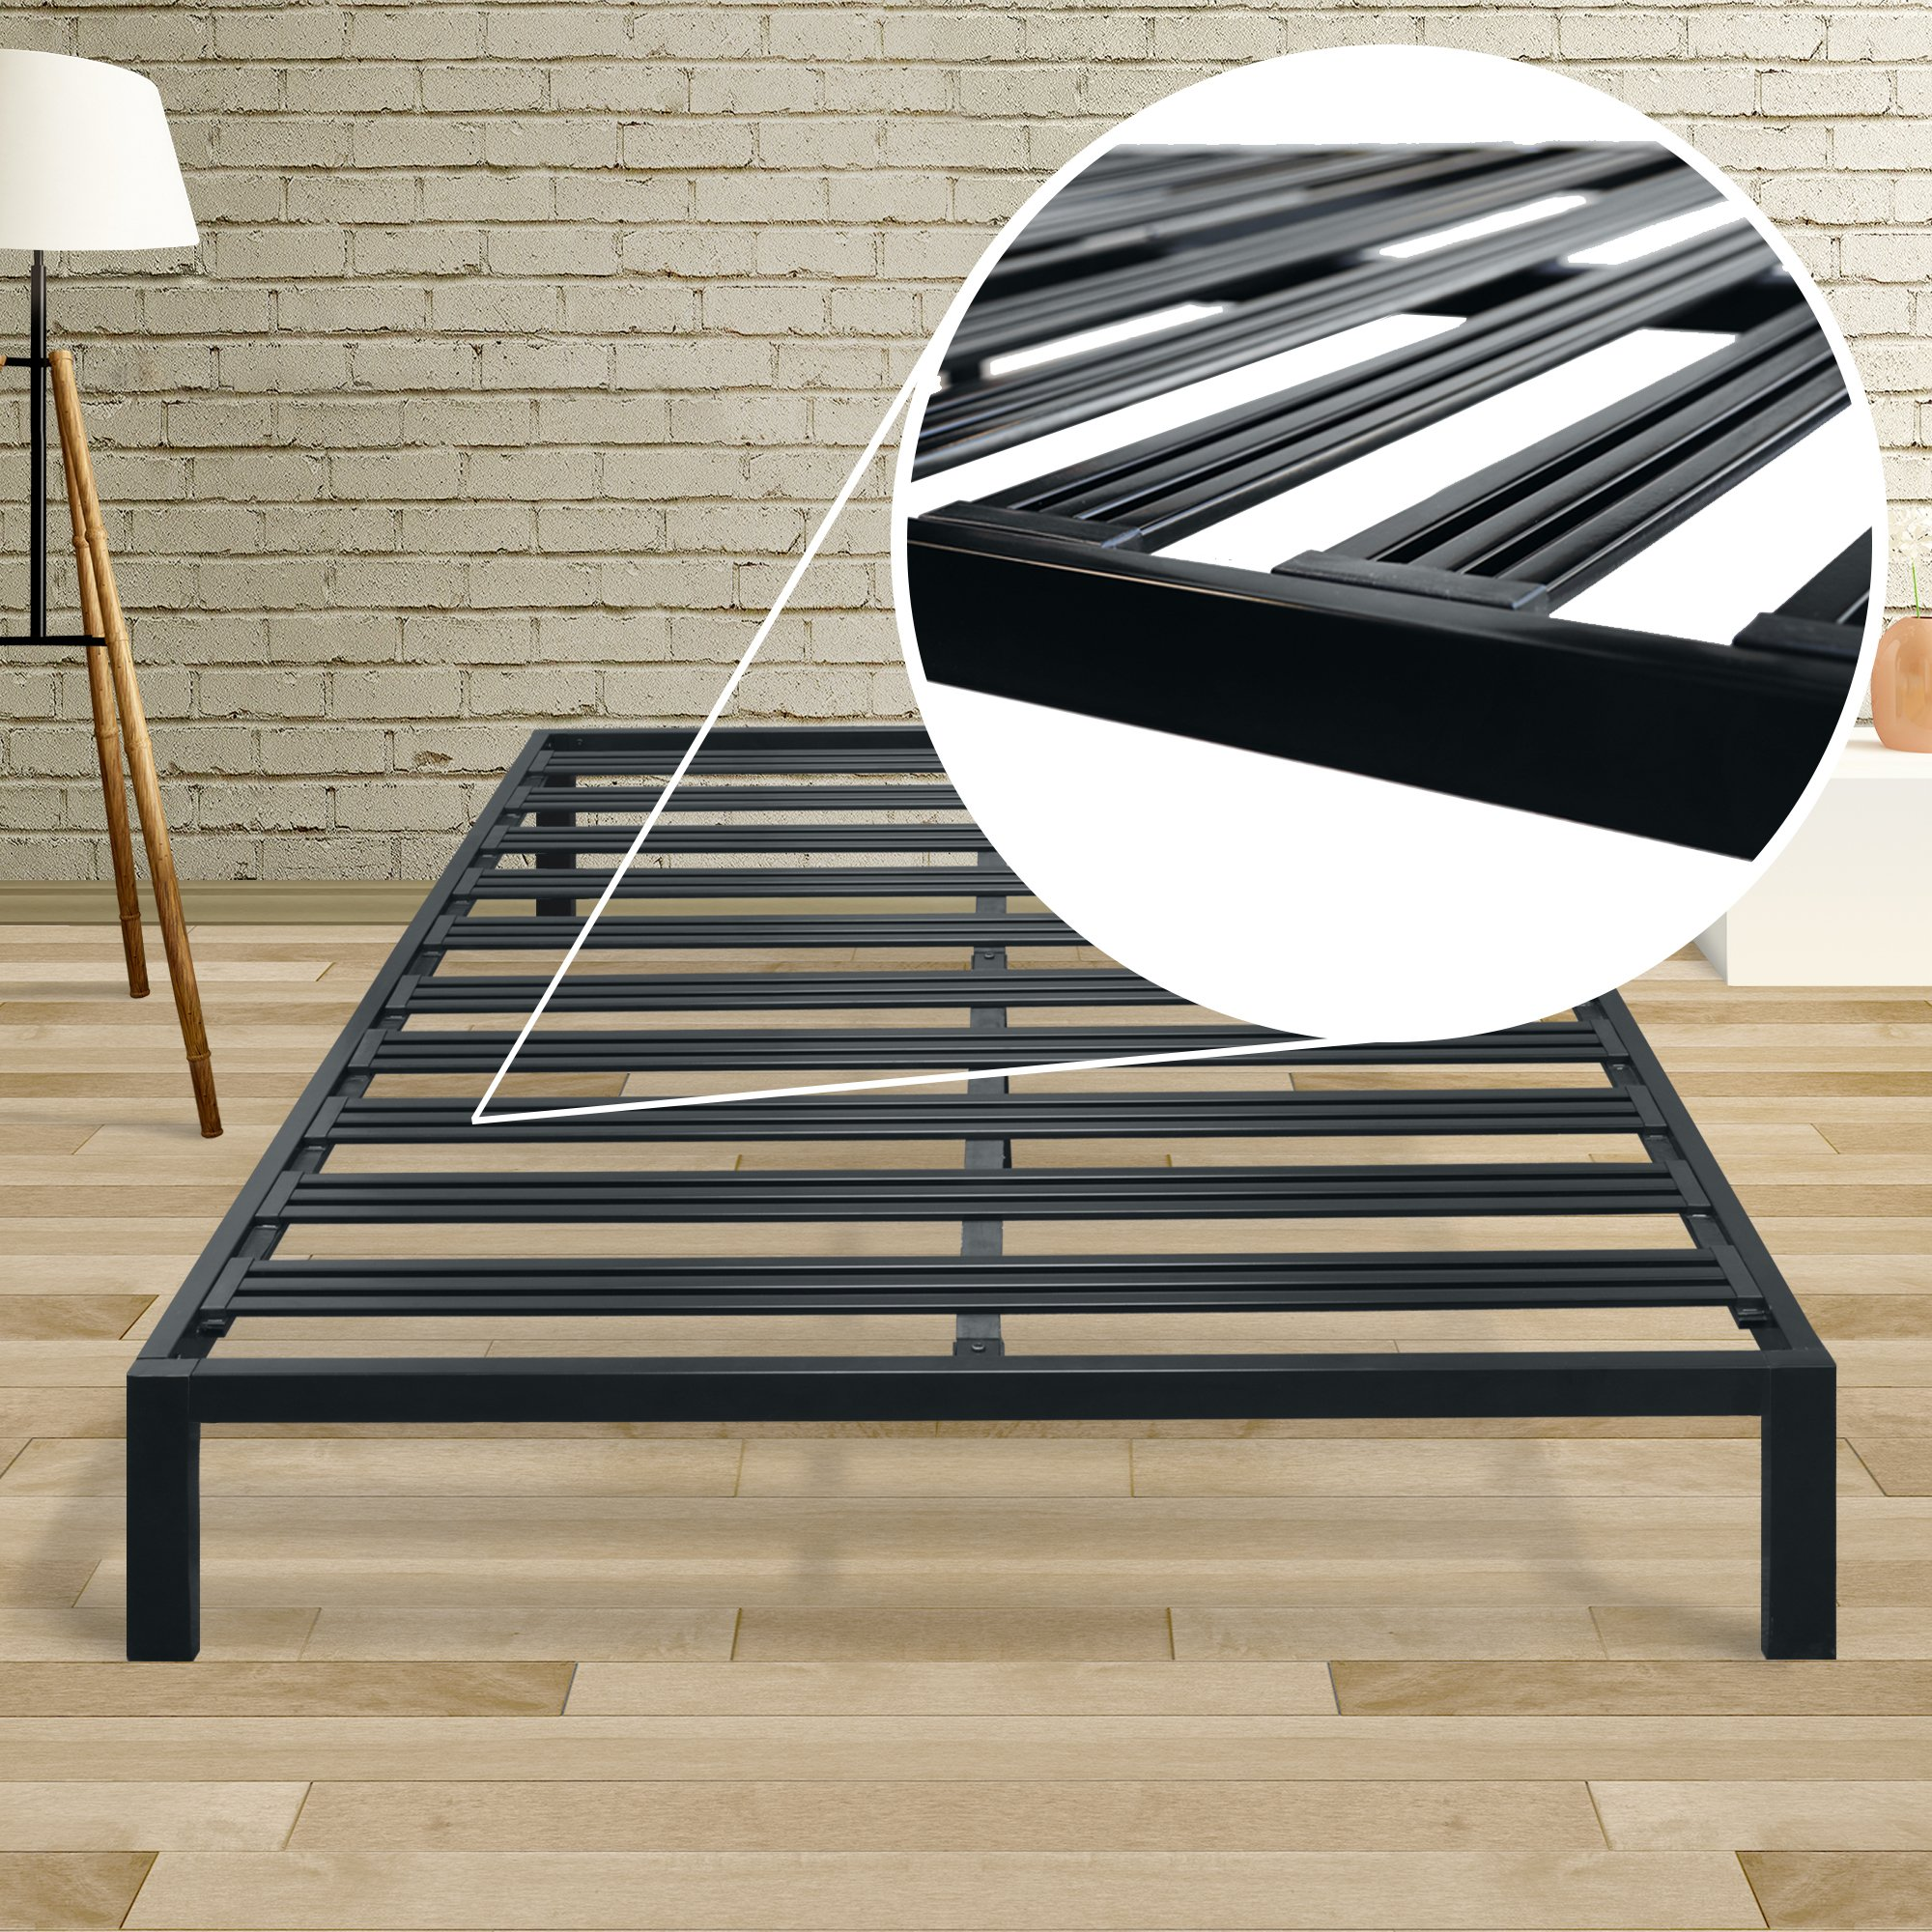 Mellow Rocky Base C (Twin) - Modern Metal Platform Bed/ Heavy Duty Steel Slats/ No Box Spring Needed/ Quick and Easy Assembly, Black by Mellow